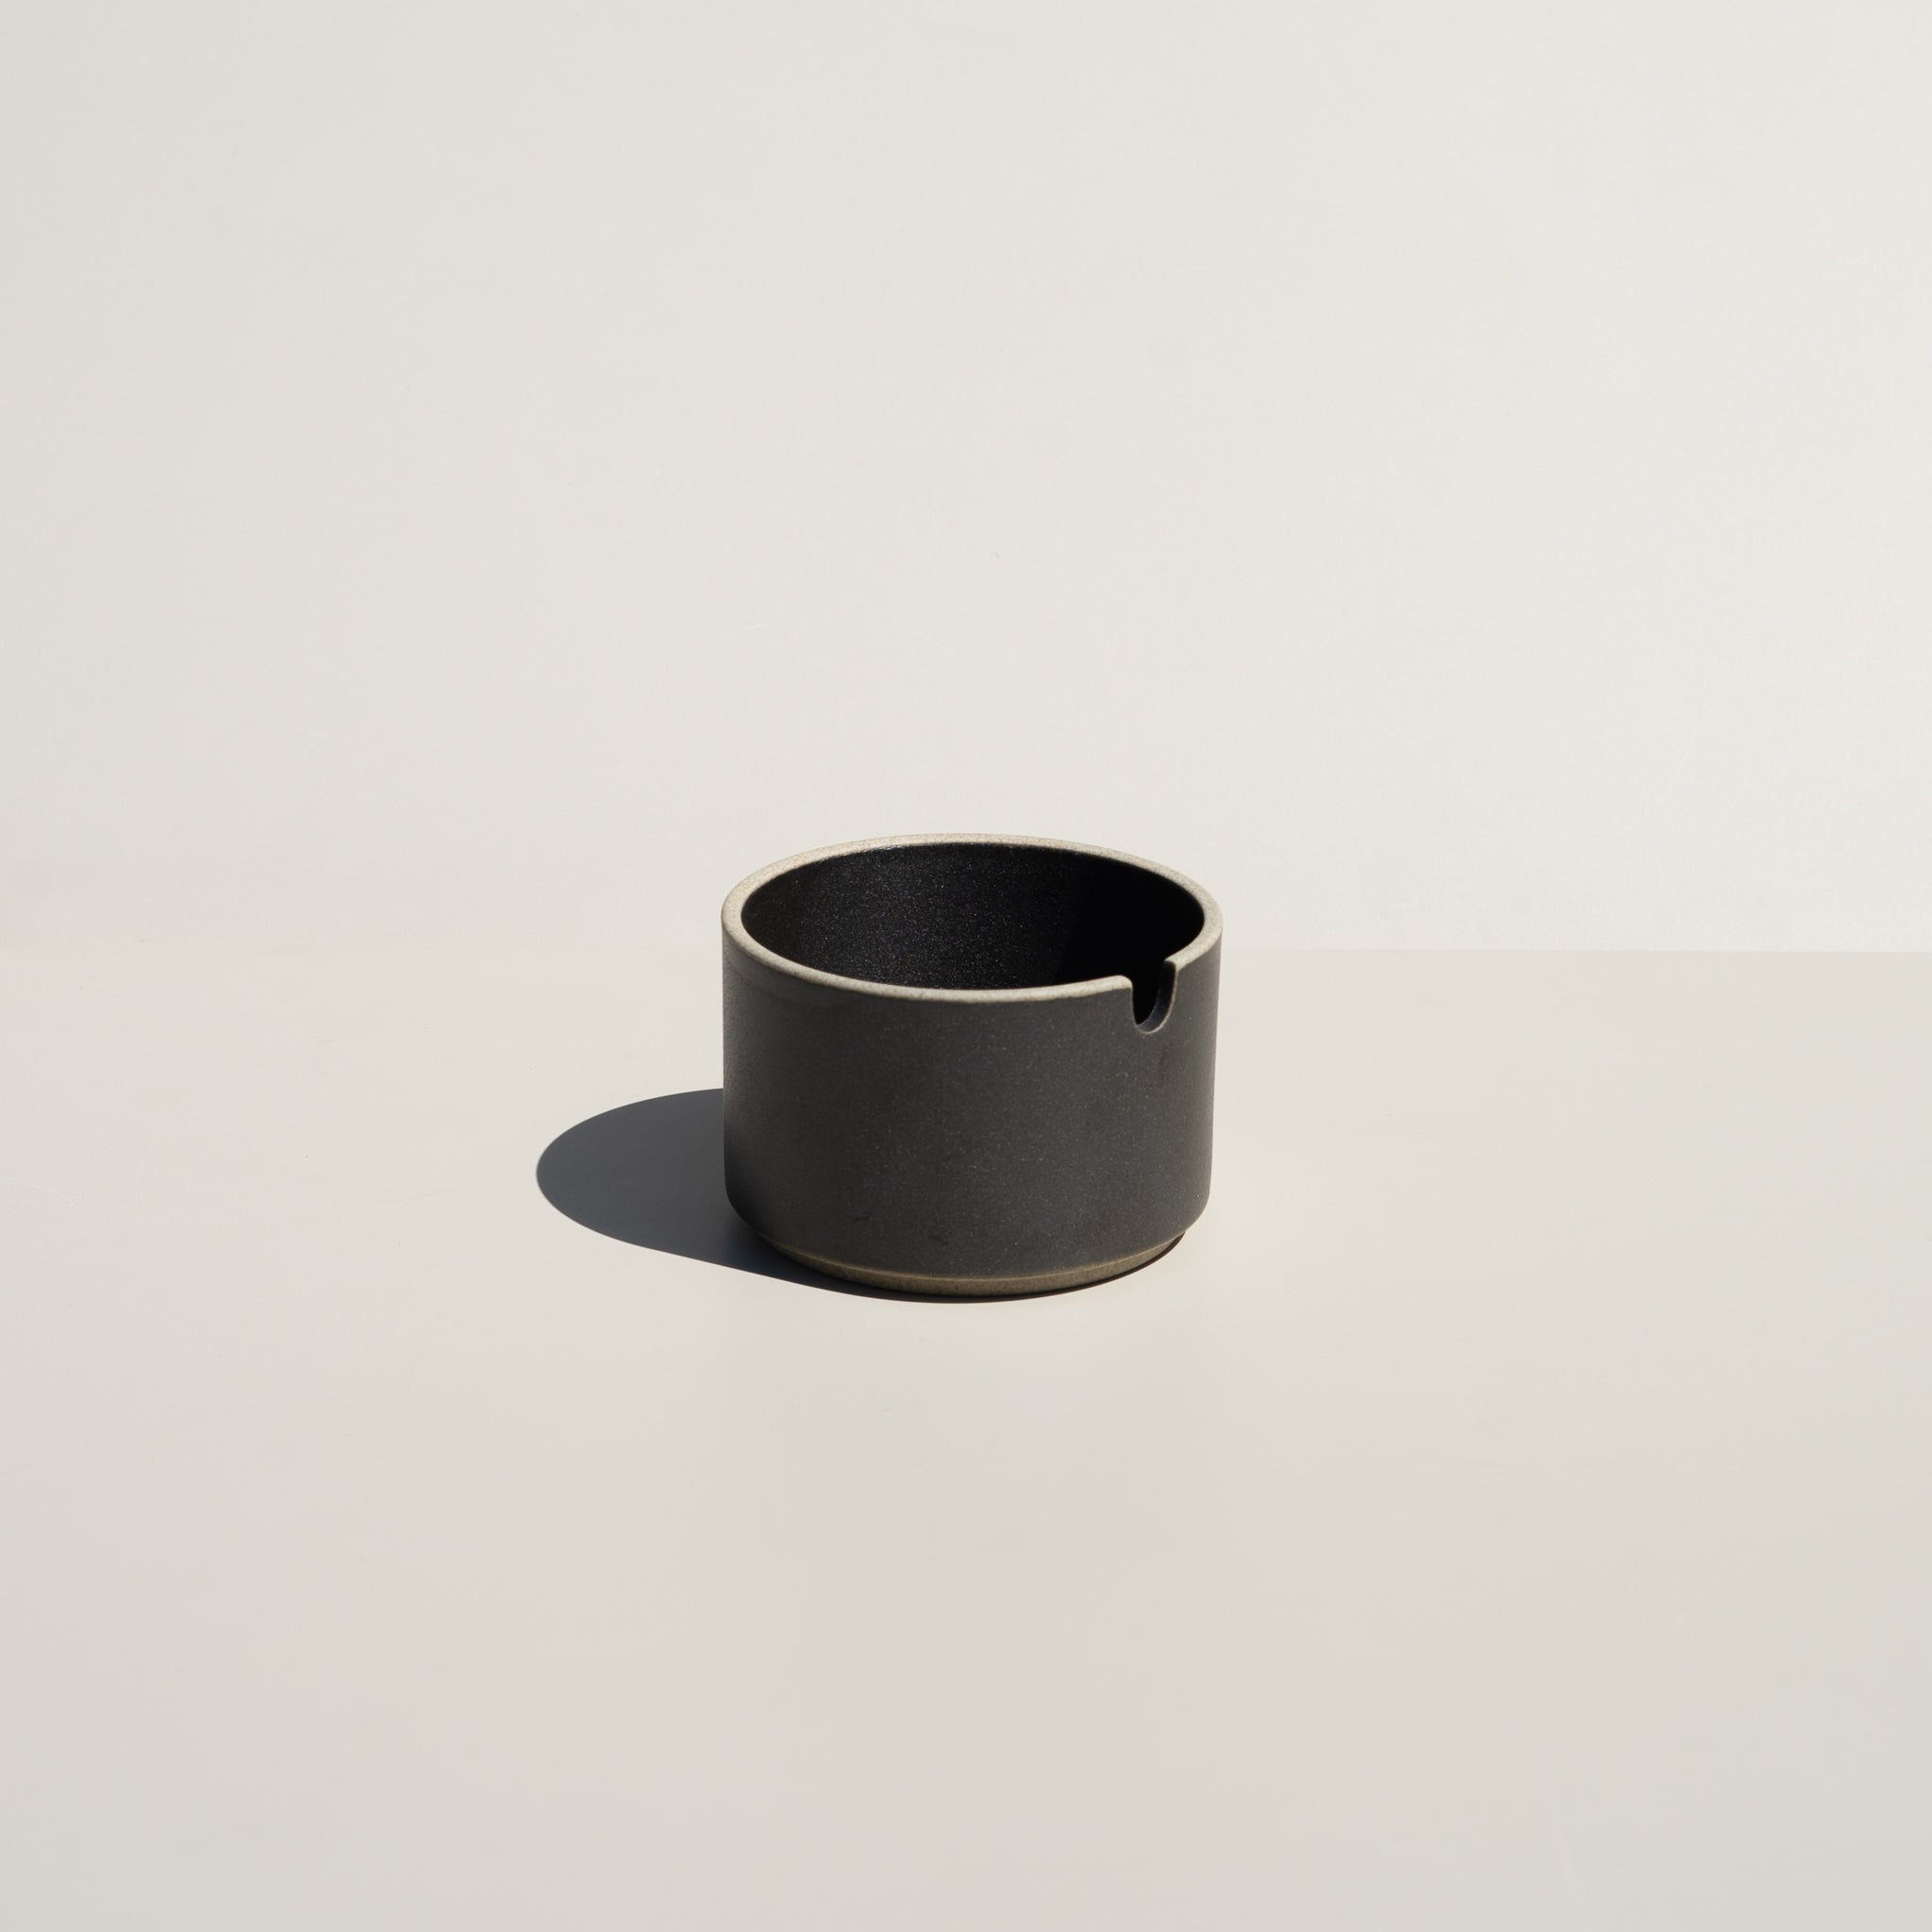 Hasami Porcelain Sugar Pot in satin black finish.